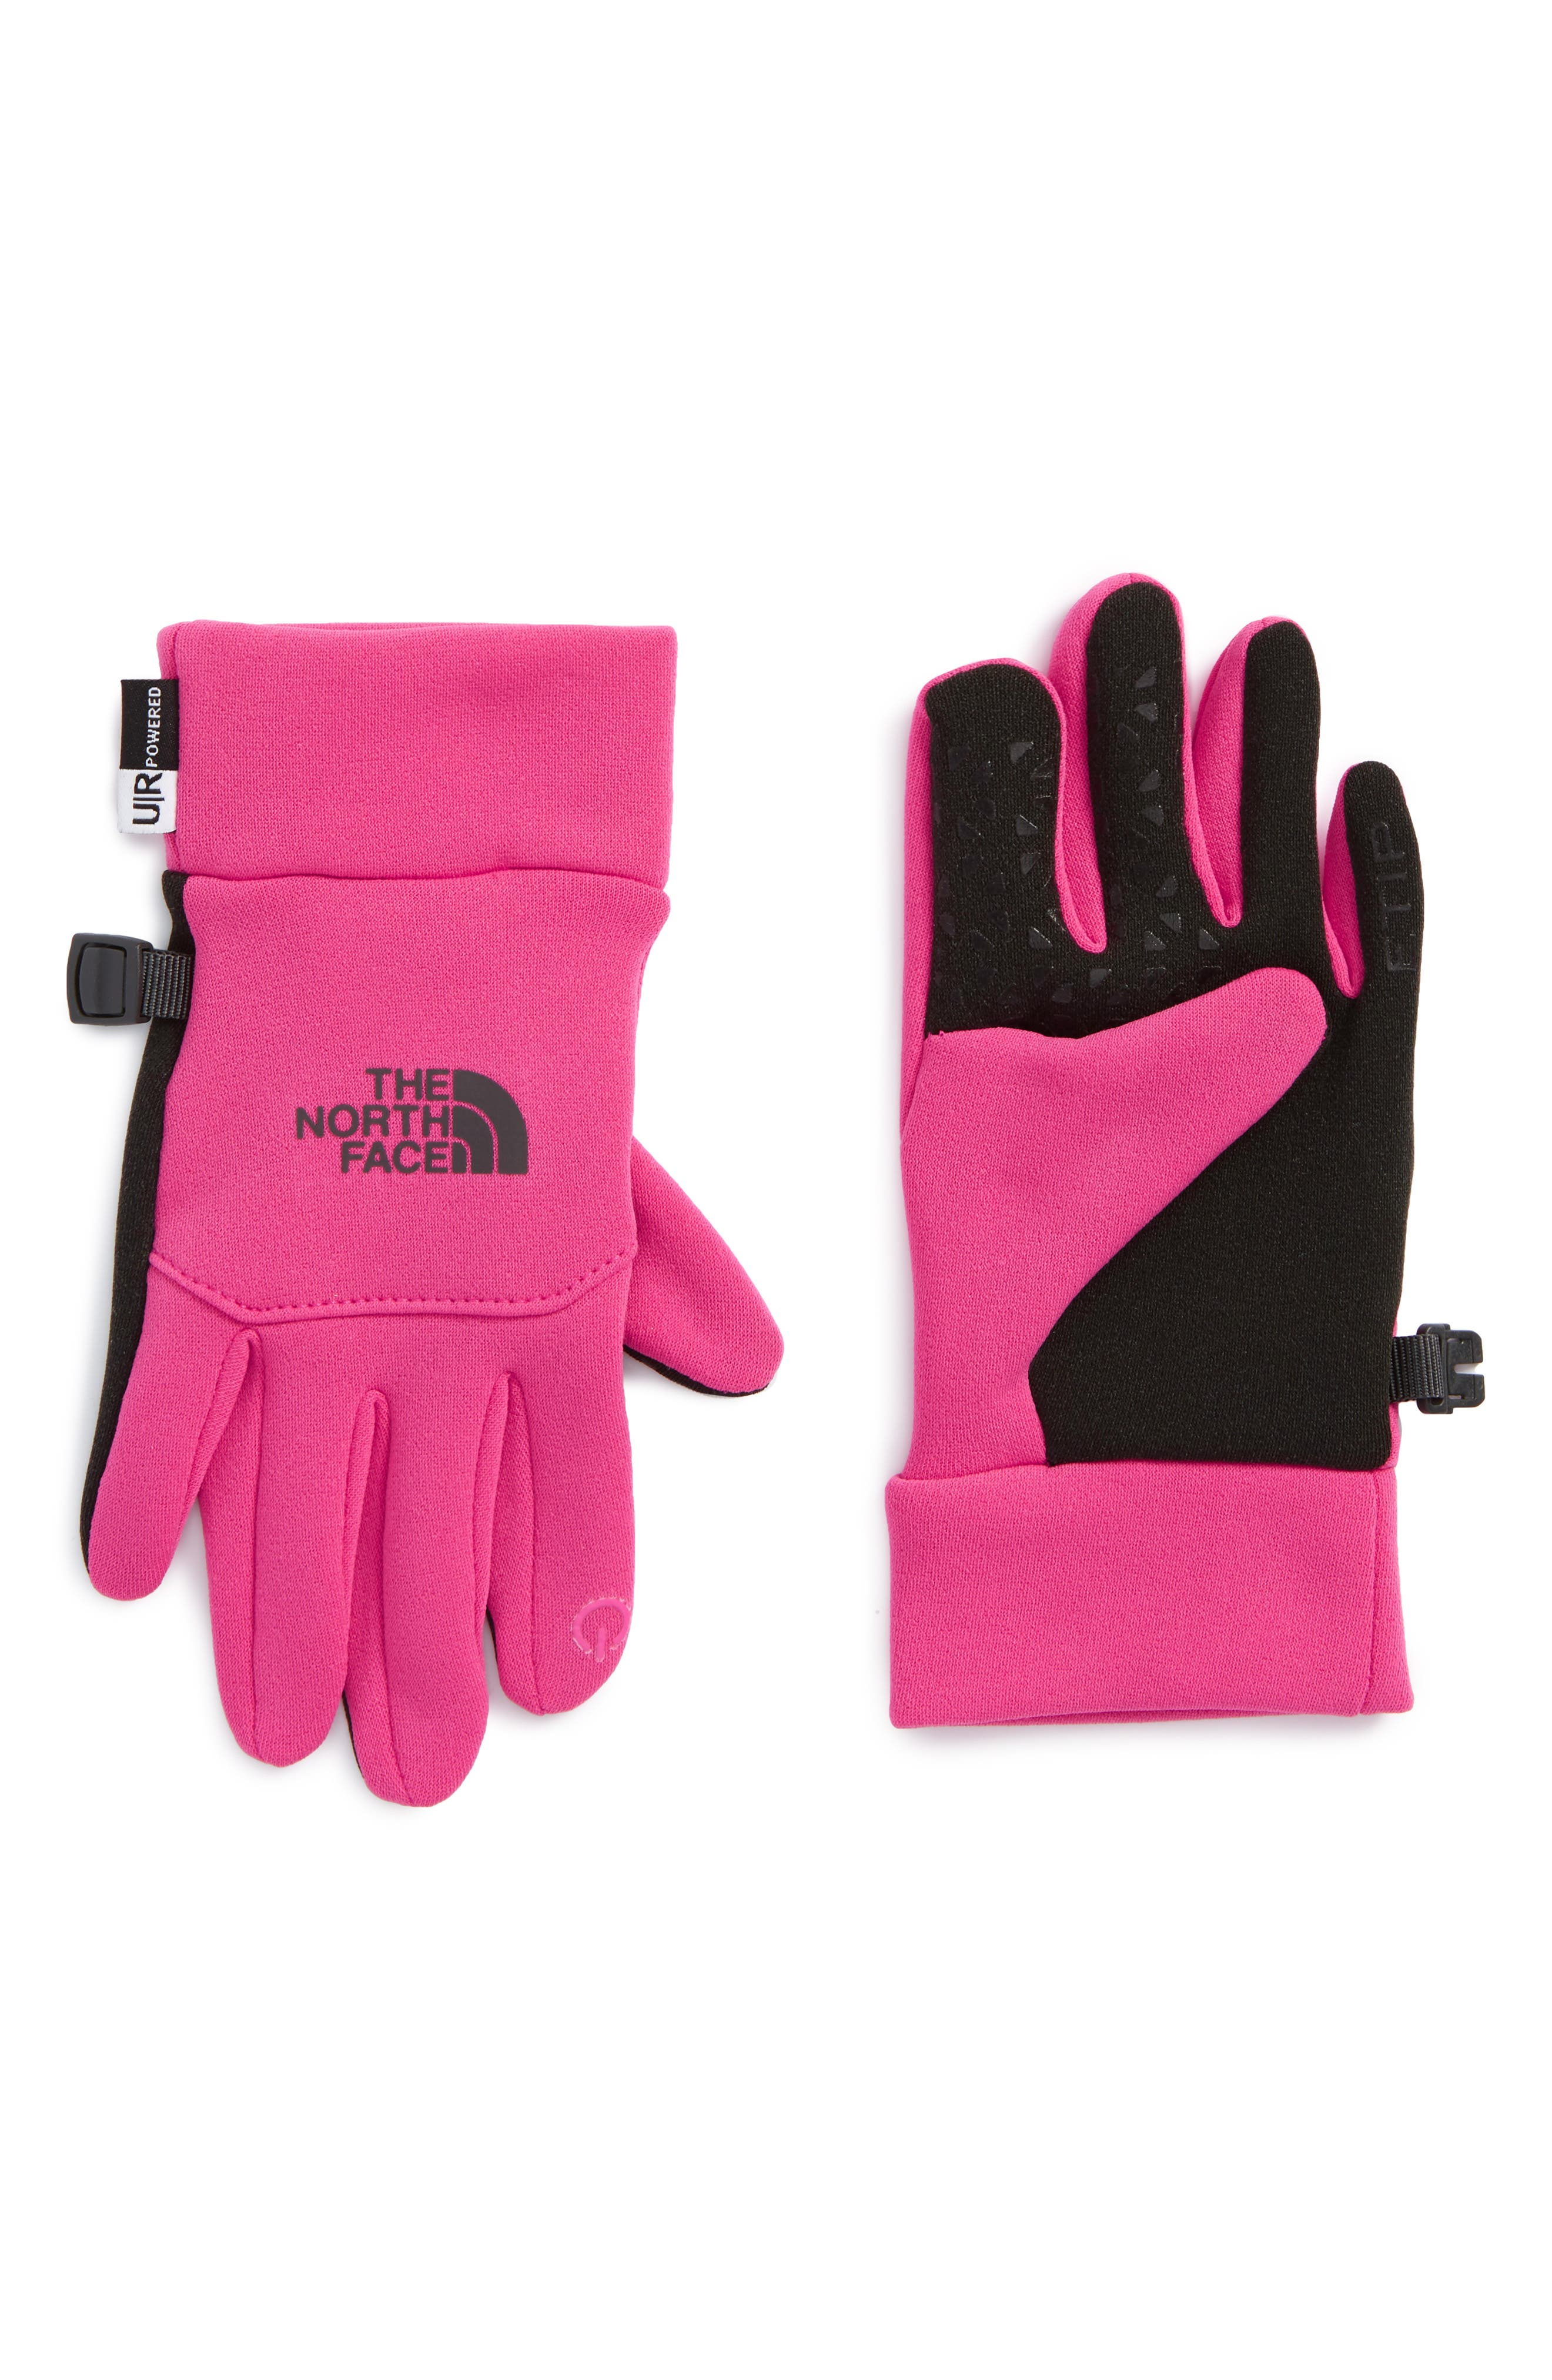 The North Face E-Tip Gloves (Girls)